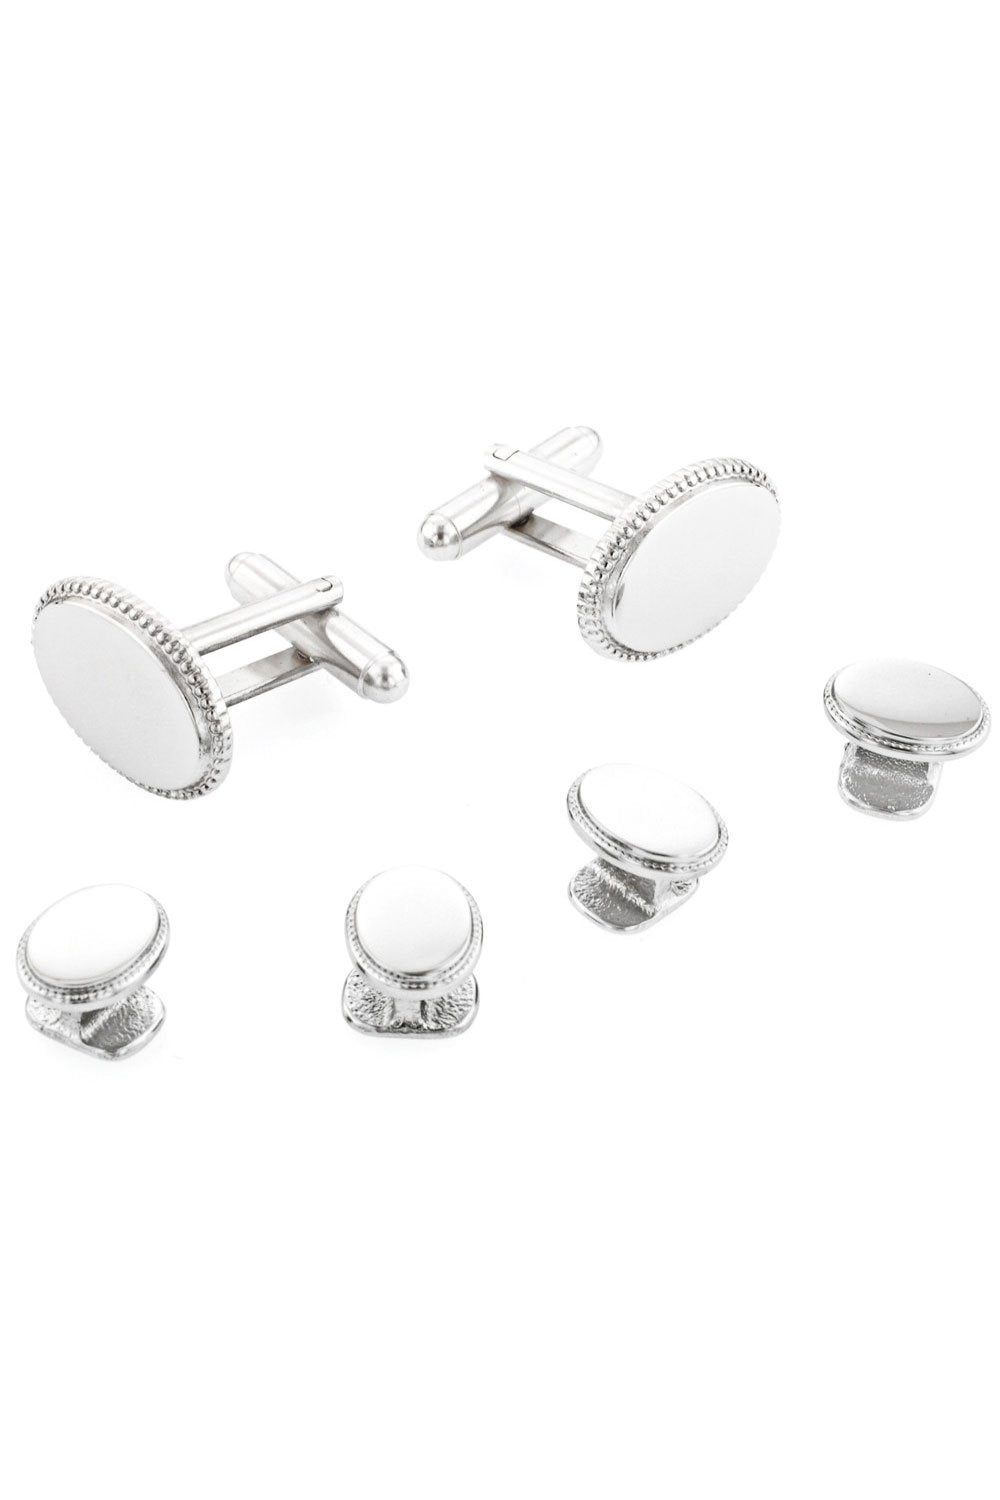 Oval Beaded Edge Silver Studs and Cufflinks Set